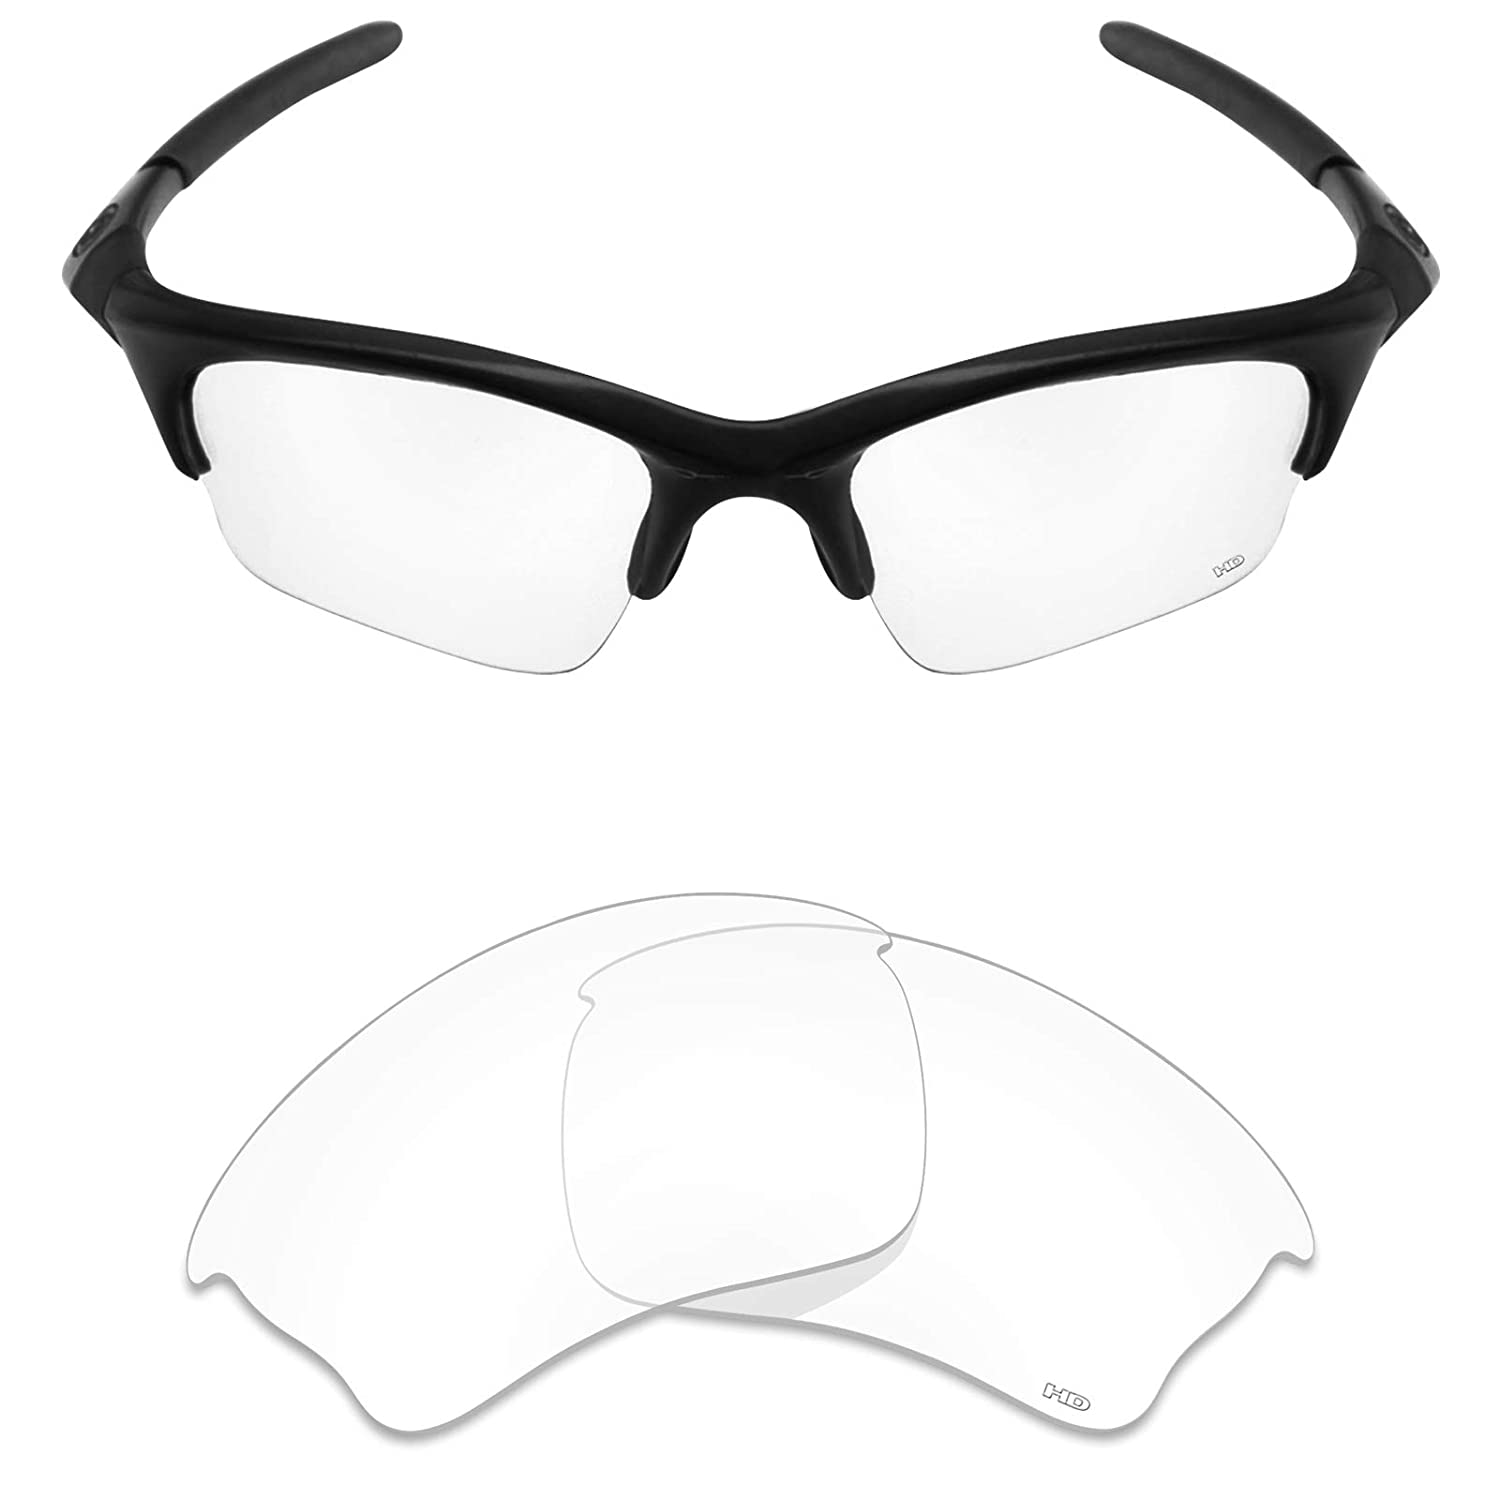 7470f74578d8 Amazon.com: Mryok+ Polarized Replacement Lenses for Oakley Half Jacket XLJ  - HD Clear: Clothing